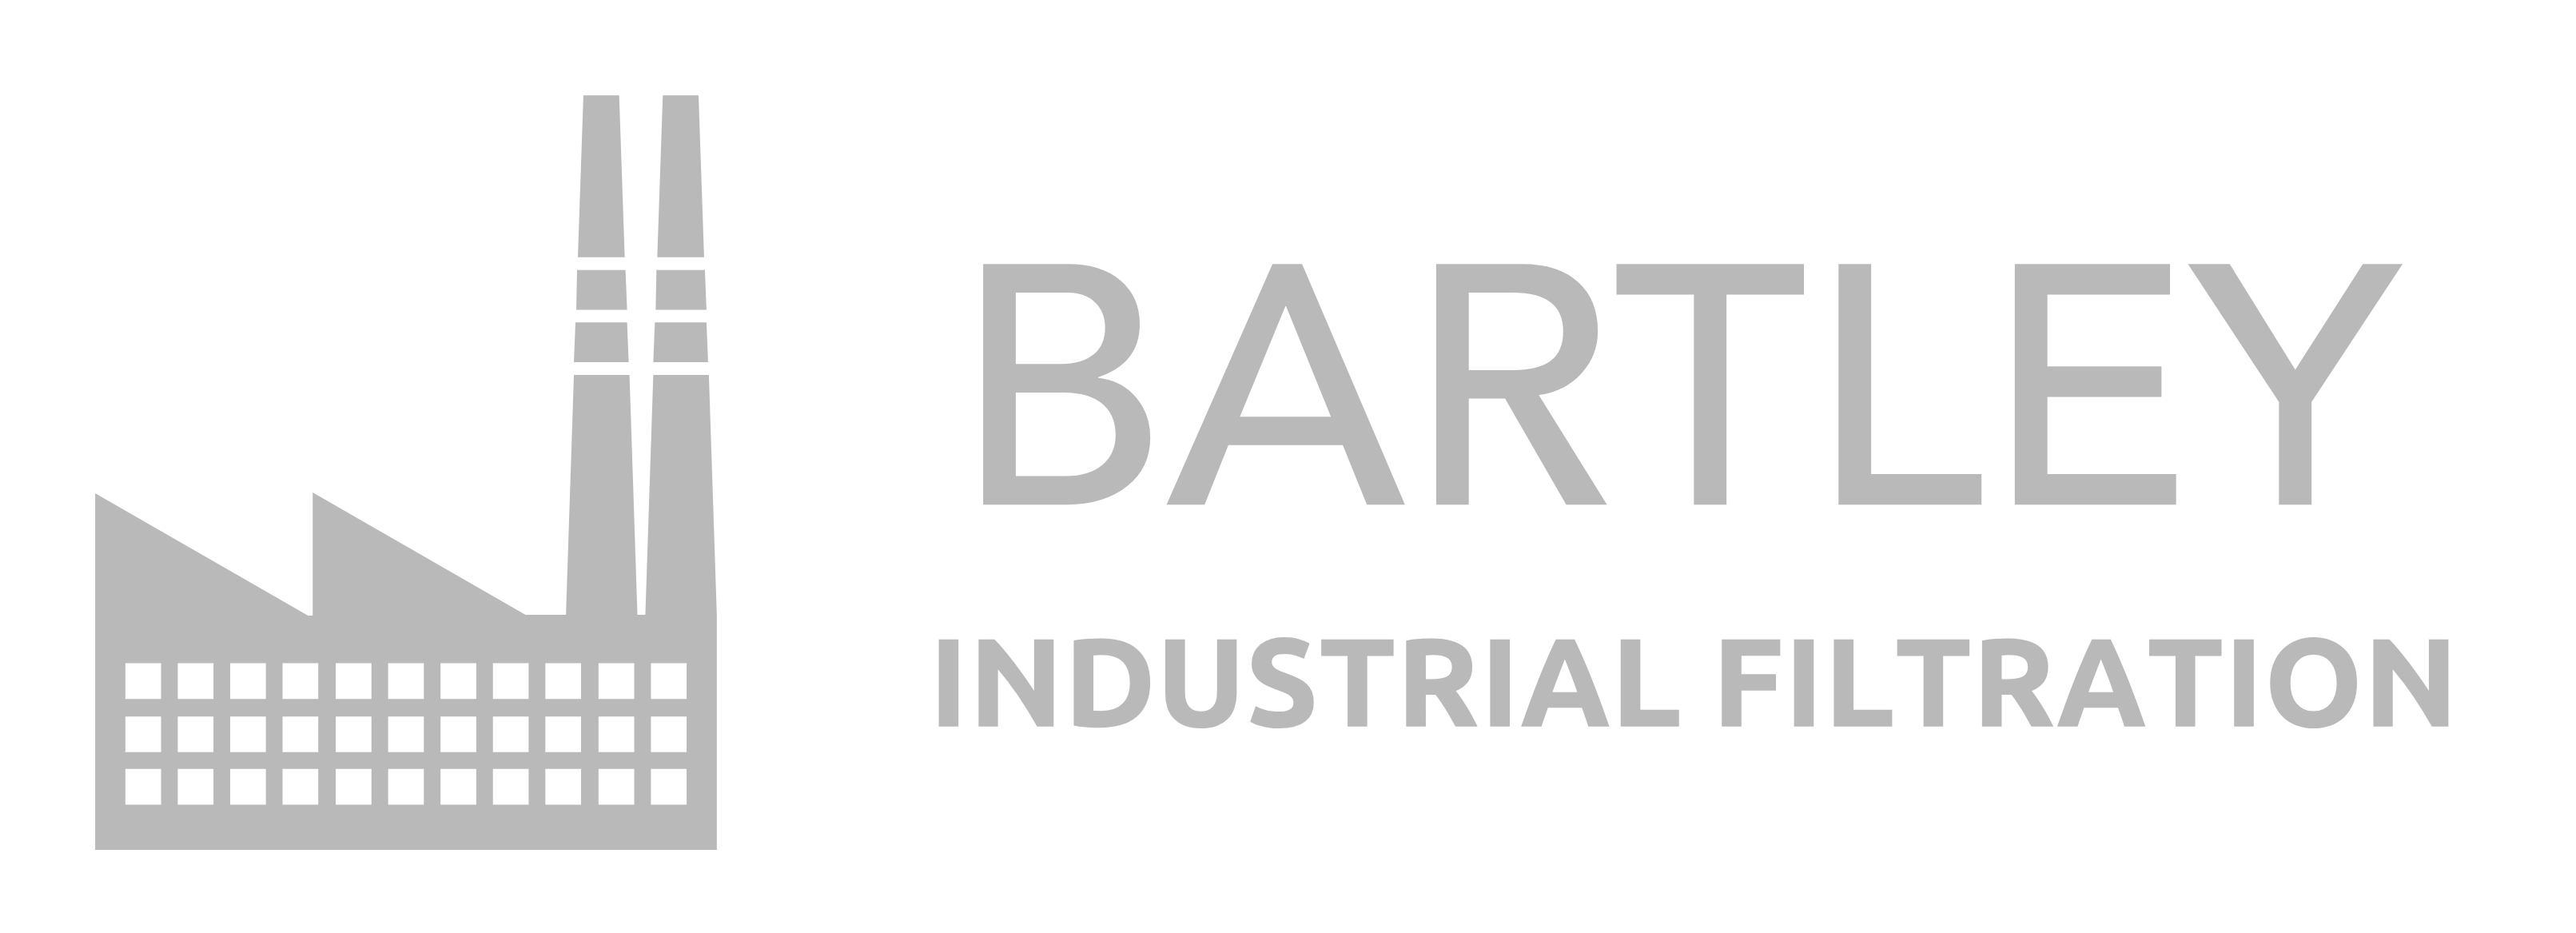 Bartley Industrial Filtration